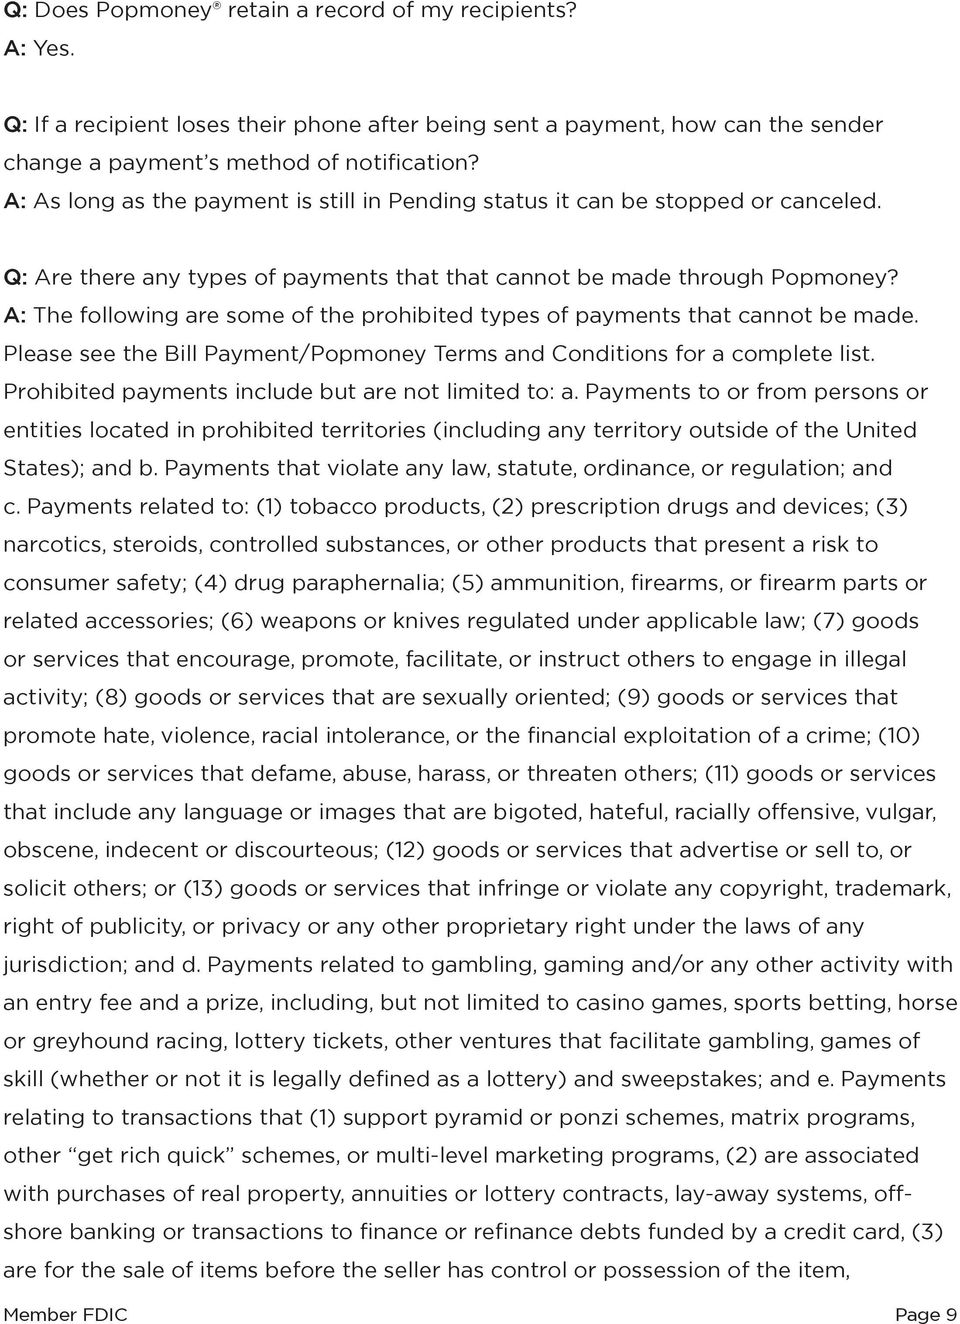 A: The following are some of the prohibited types of payments that cannot be made. Please see the Bill Payment/Popmoney Terms and Conditions for a complete list.